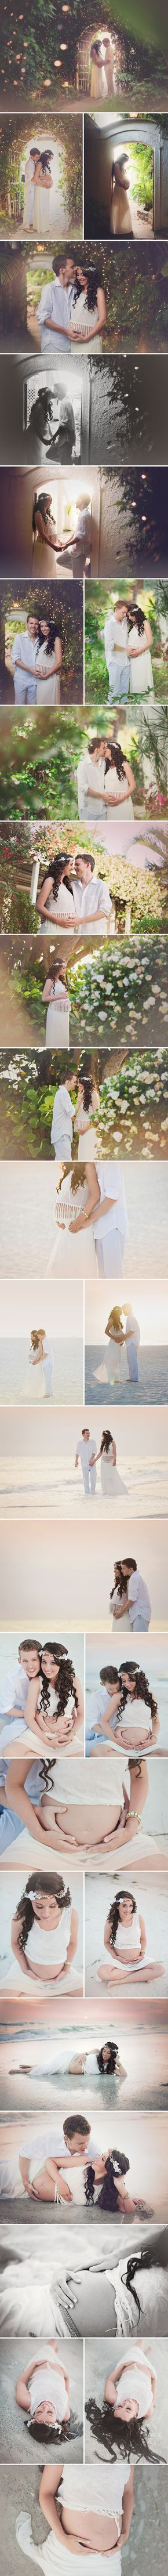 magical maternity>> I need to live somewhere that has amazing locations like this!